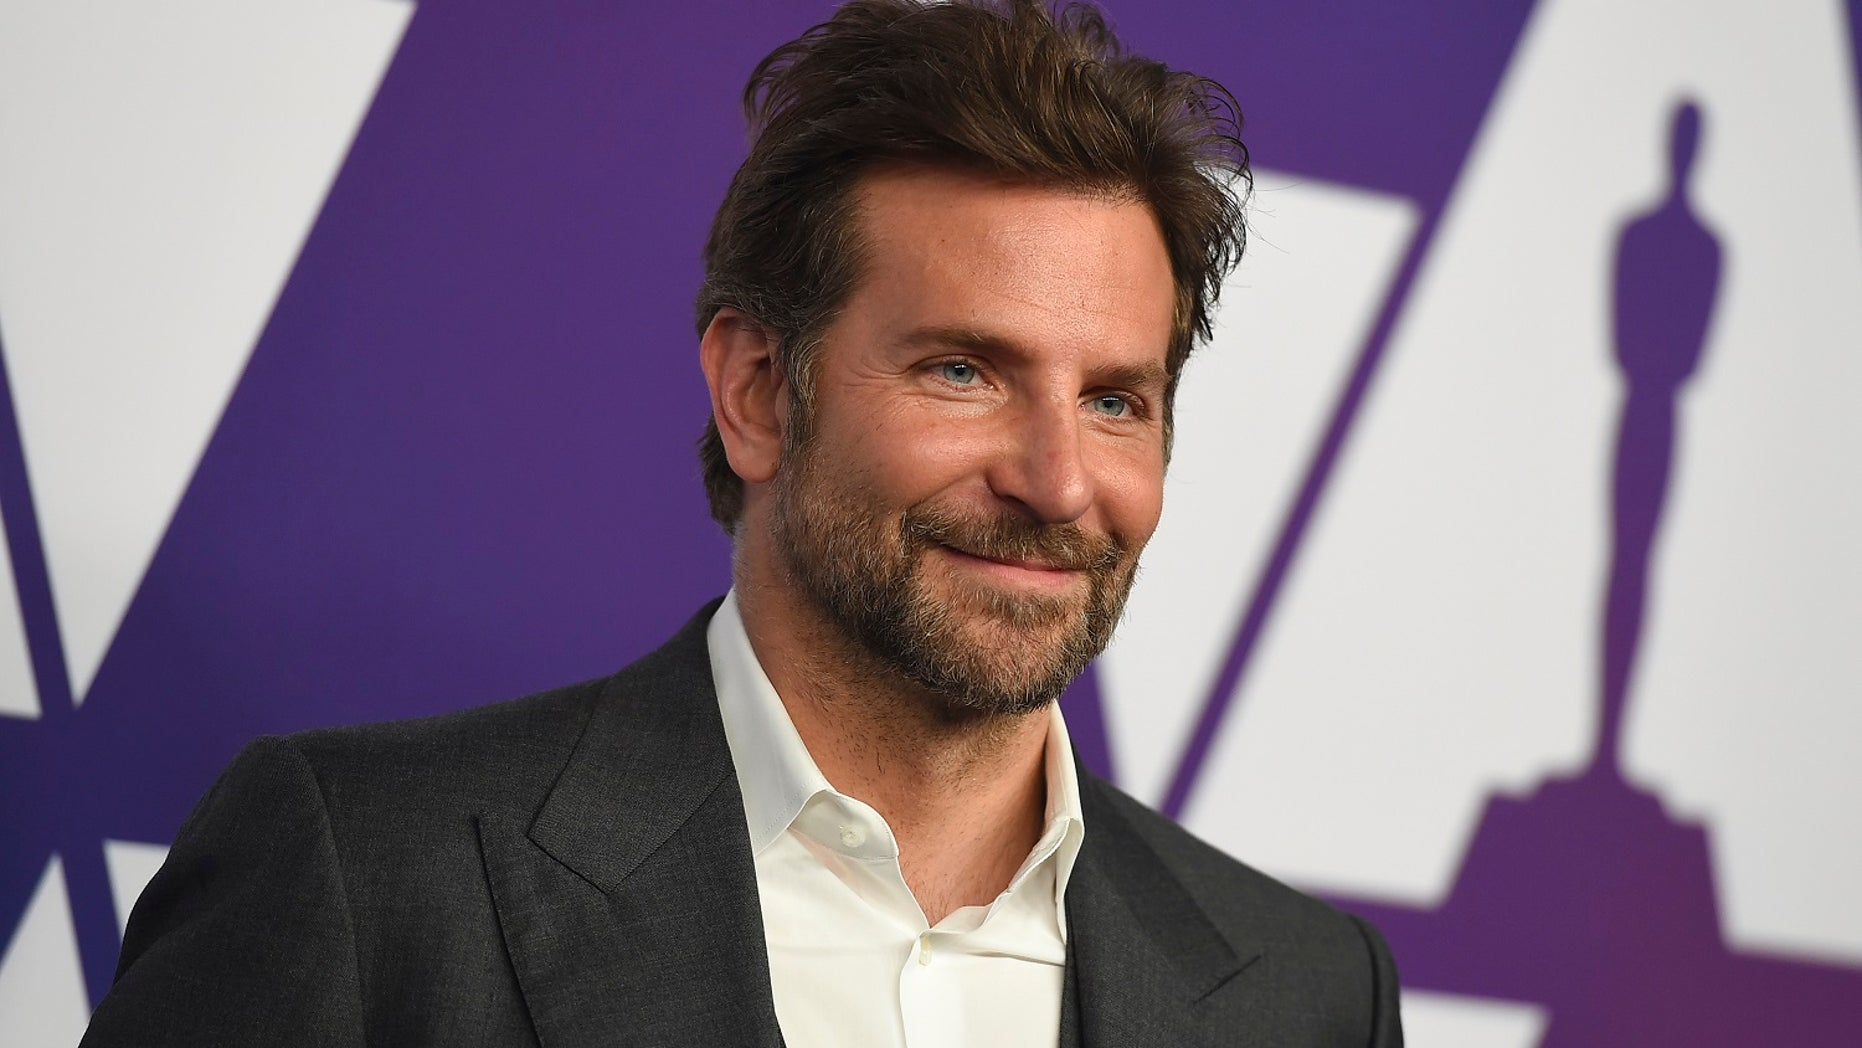 Bradley Cooper was 'embarrassed' by Oscars best director snub